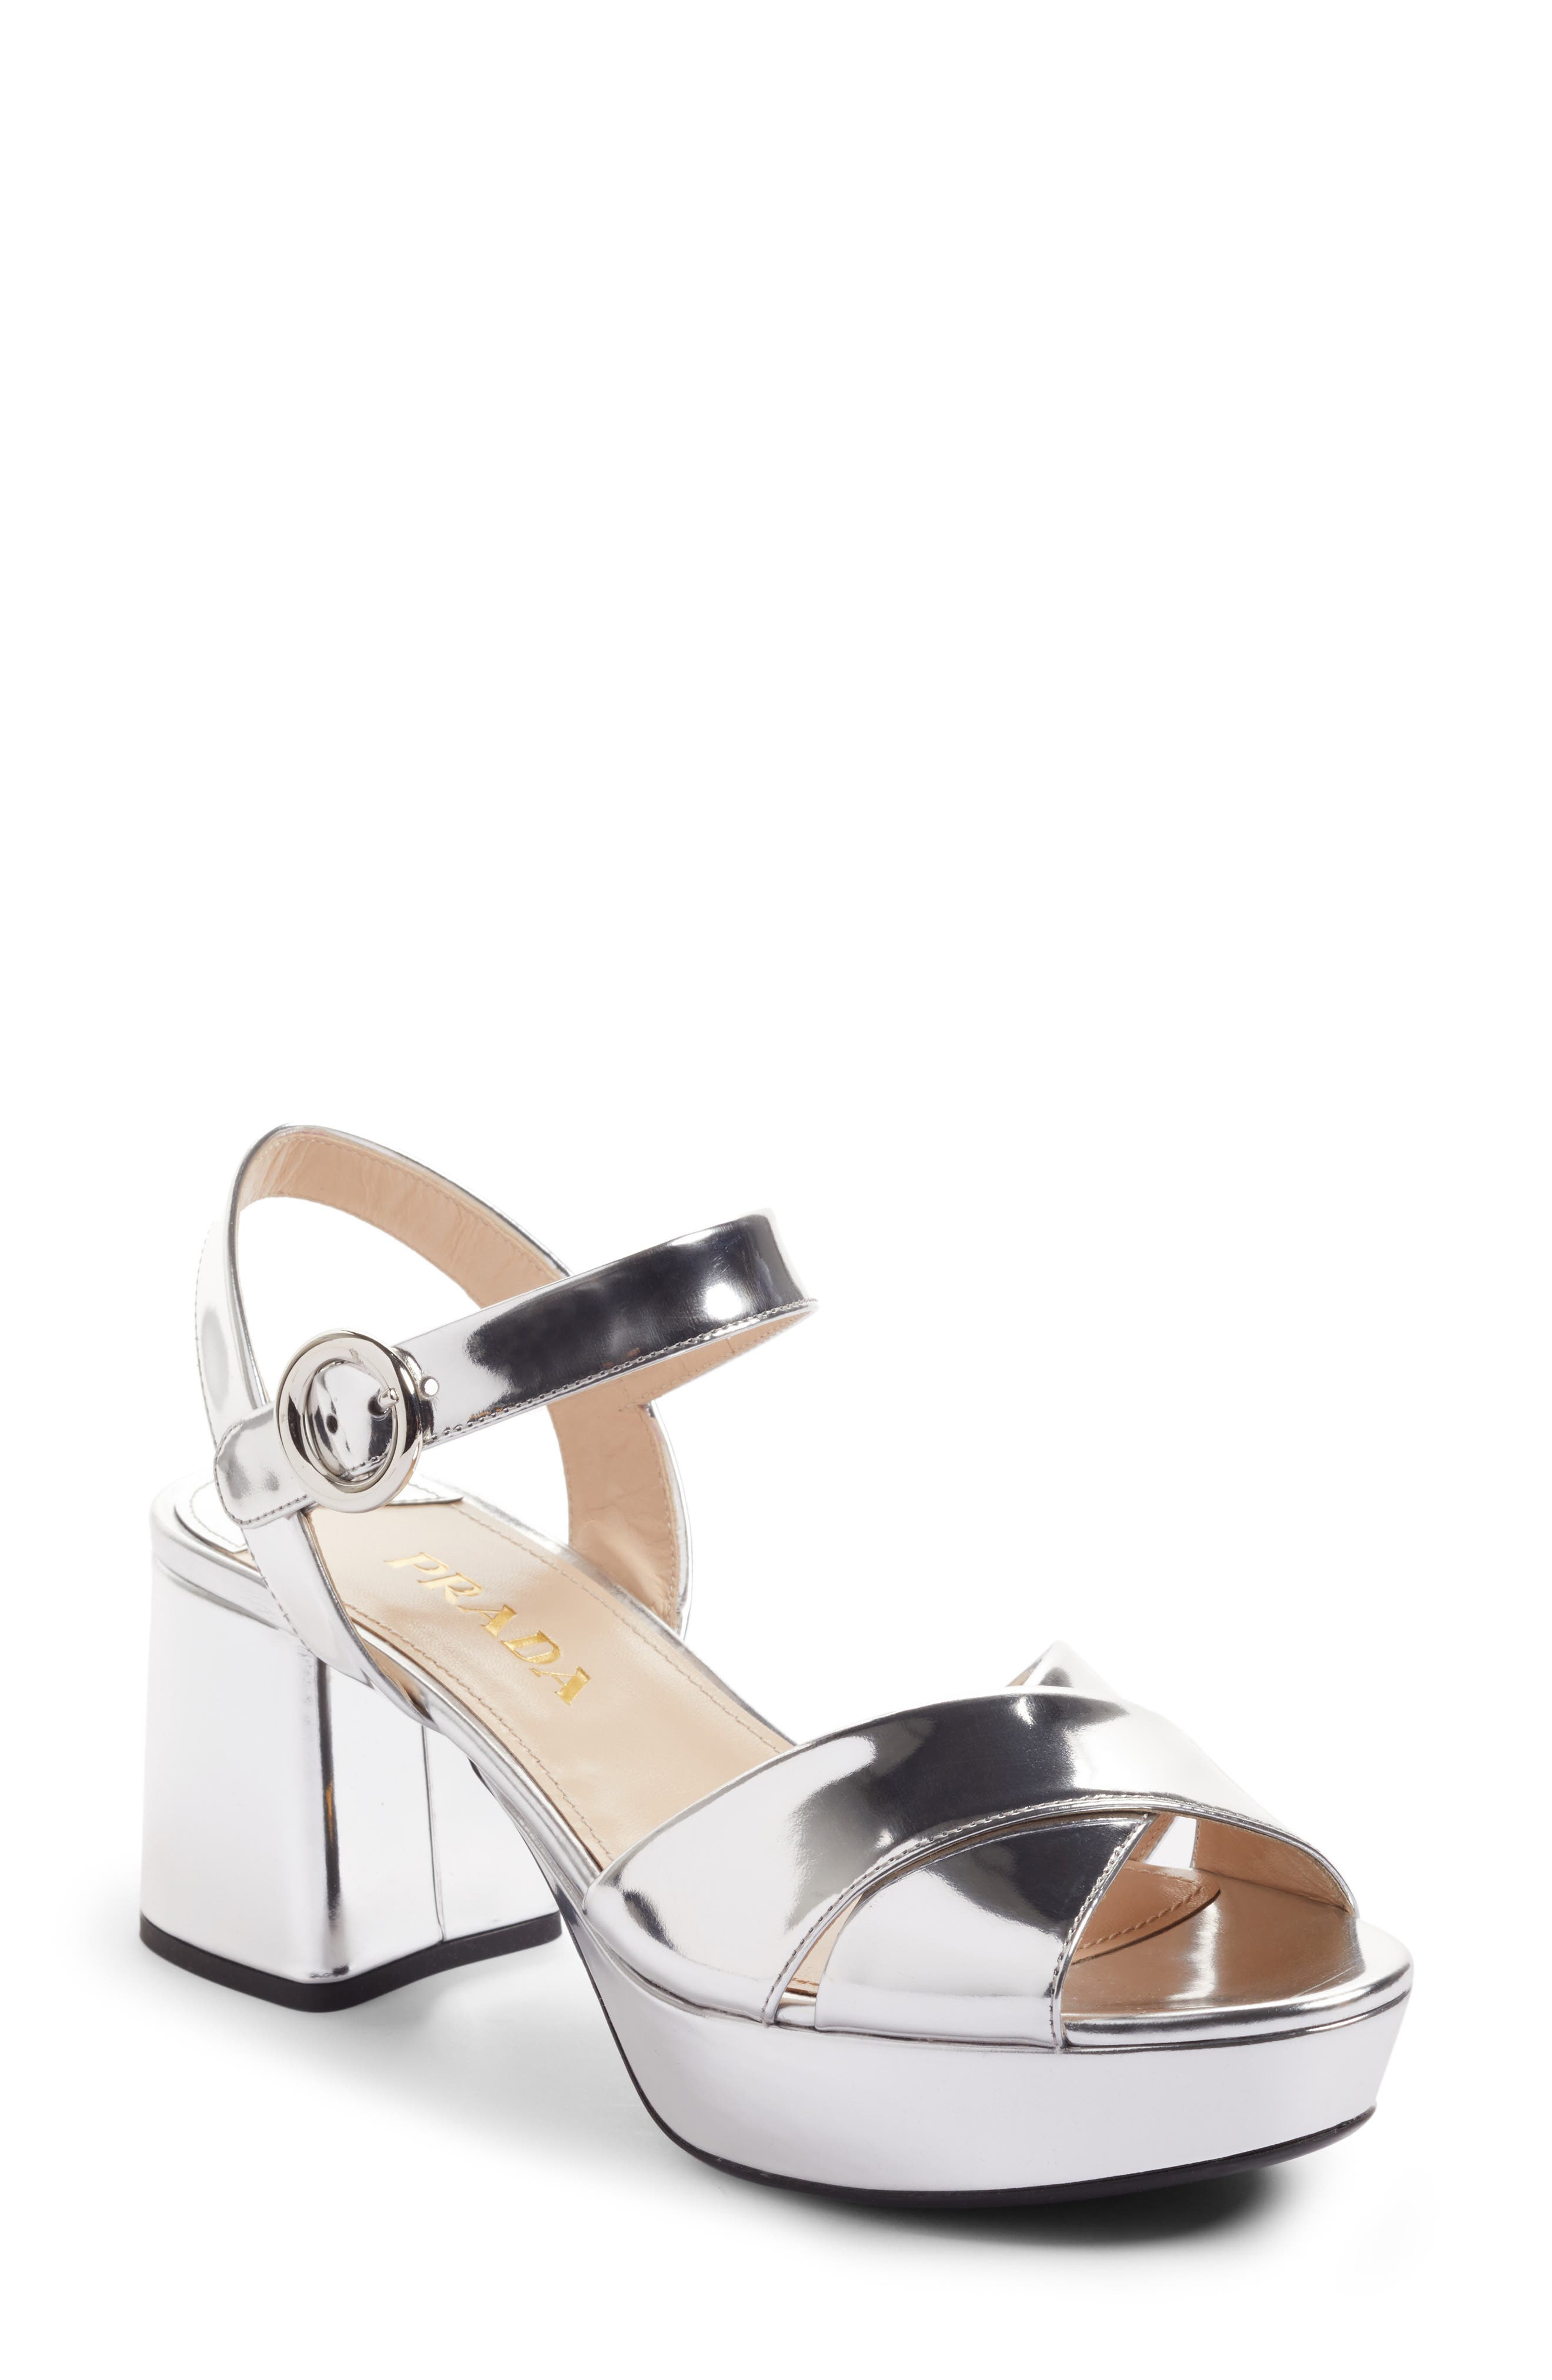 Alternate Image 1 Selected - Prada Strappy Platform Sandal (Women)